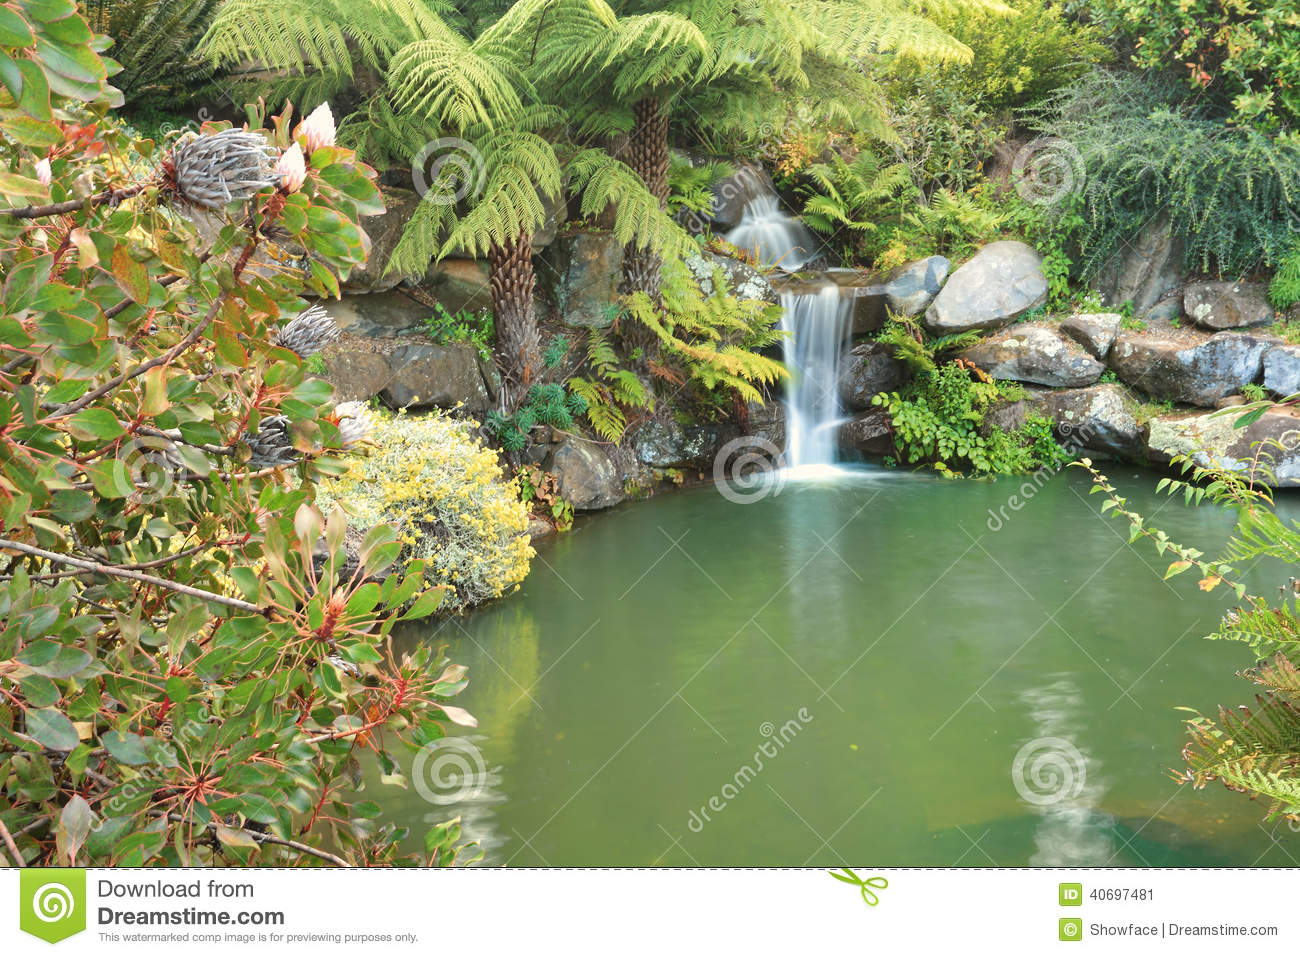 Tranquil waterfall in lush environment mt tomah australia for Waterfall environment